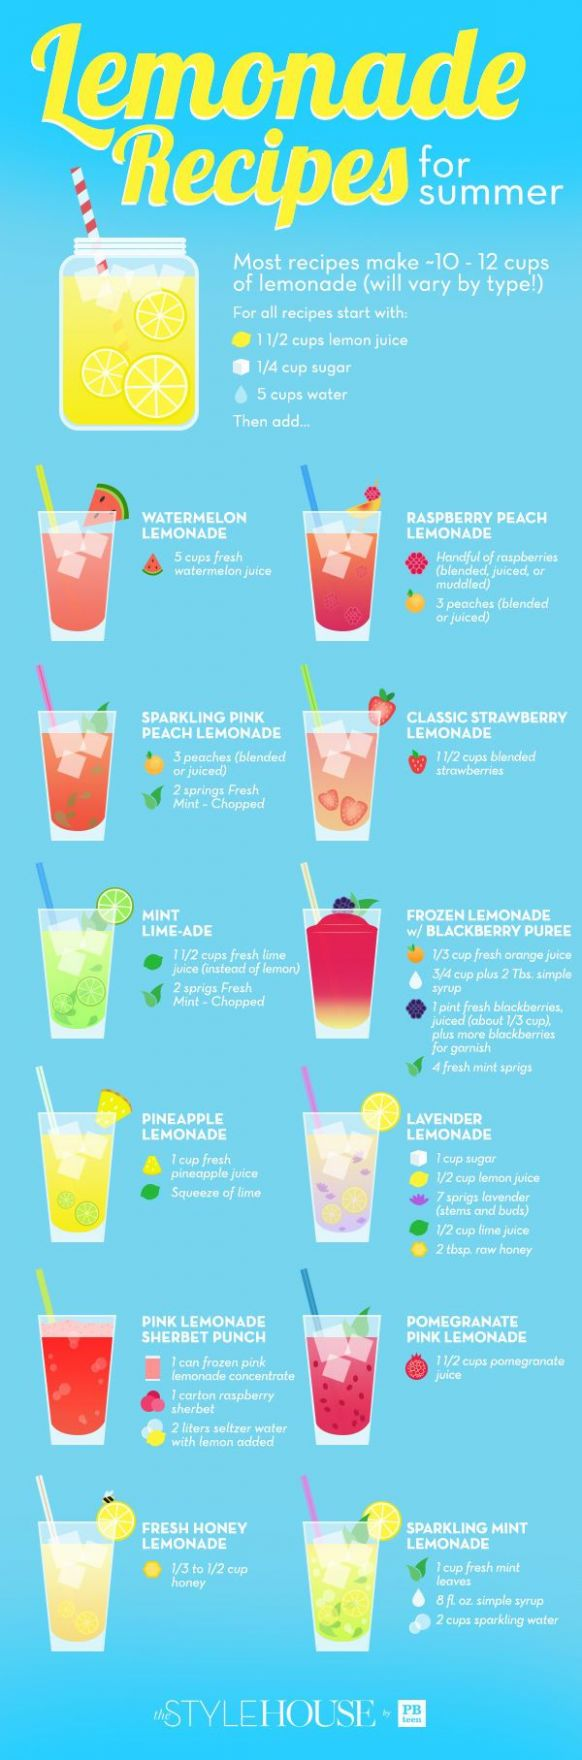 Lemonade Recipes For Summer Pictures, Photos, and Images for ..